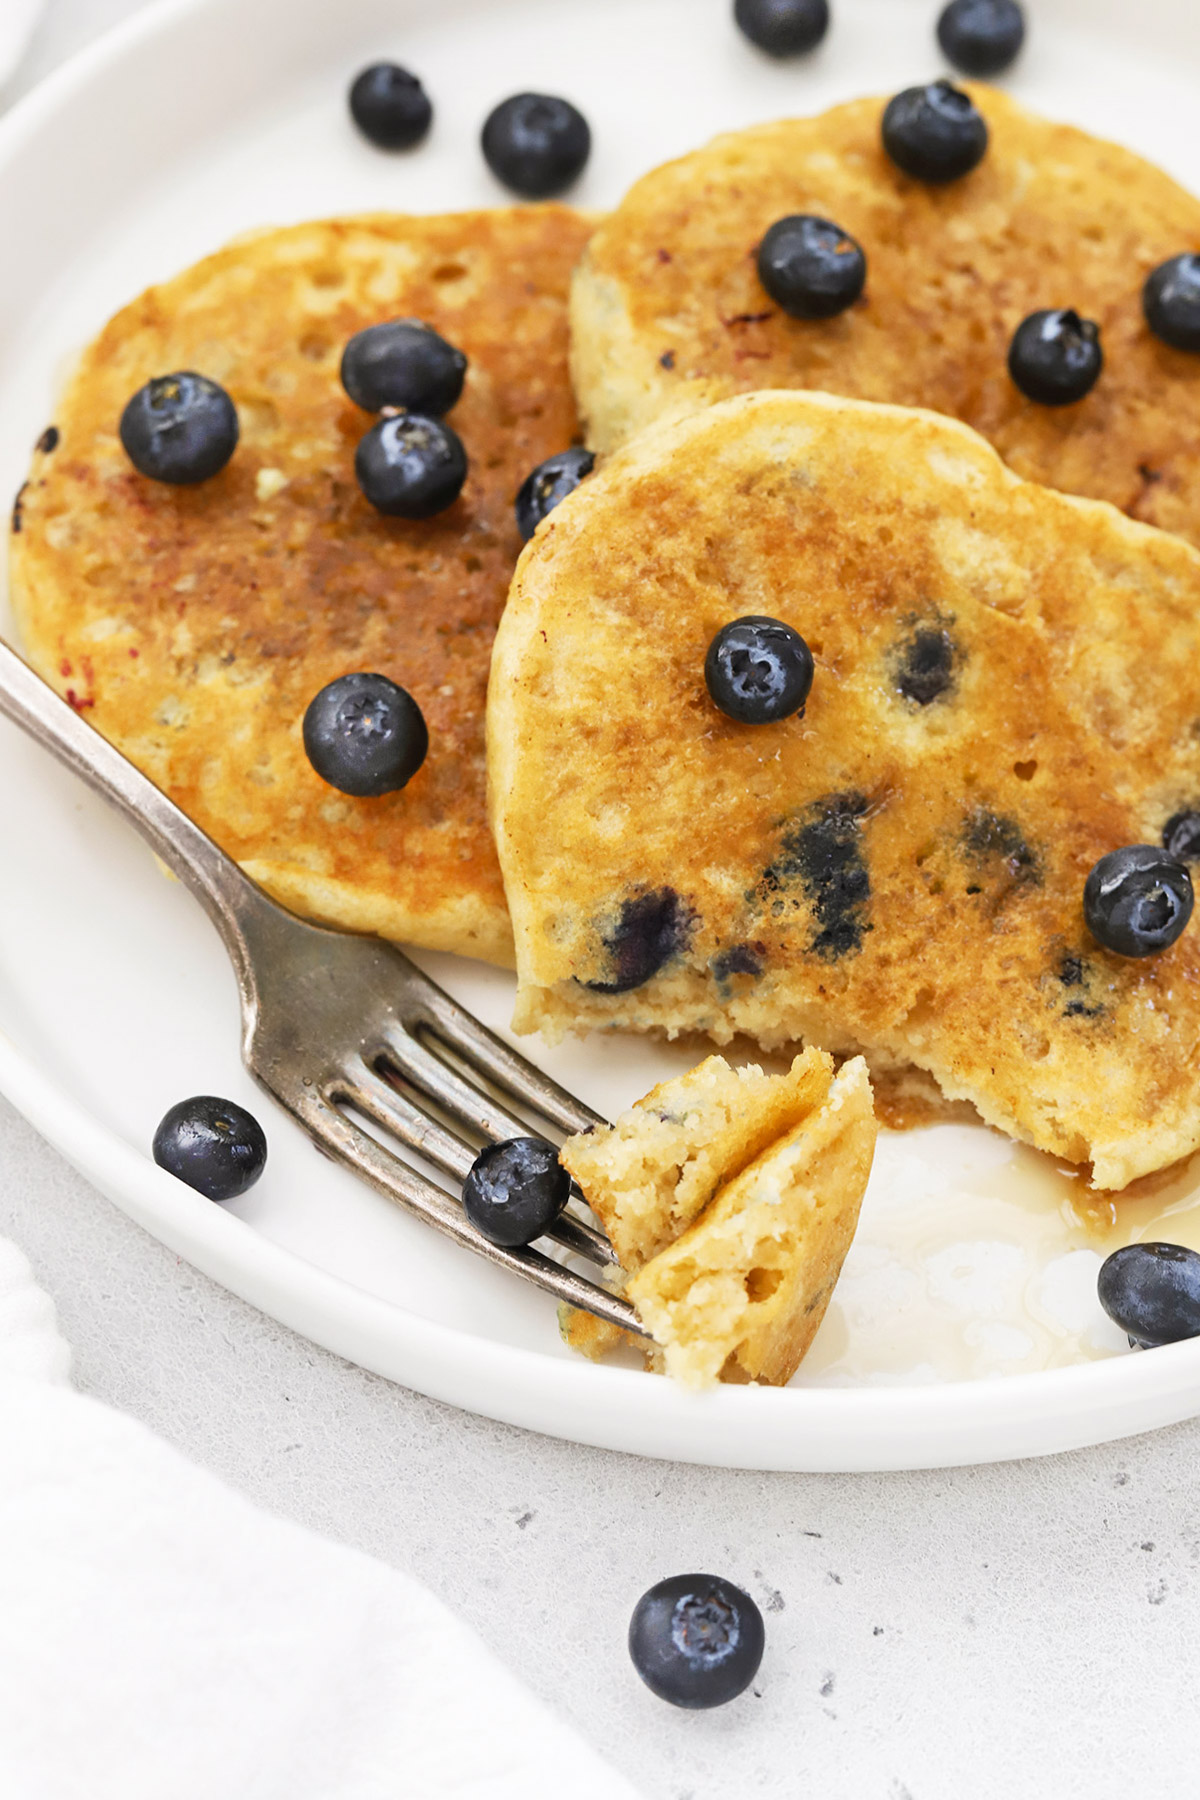 Close up view of 3 fluffy gluten-free blueberry pancakes on a white plate drizzled with syrup